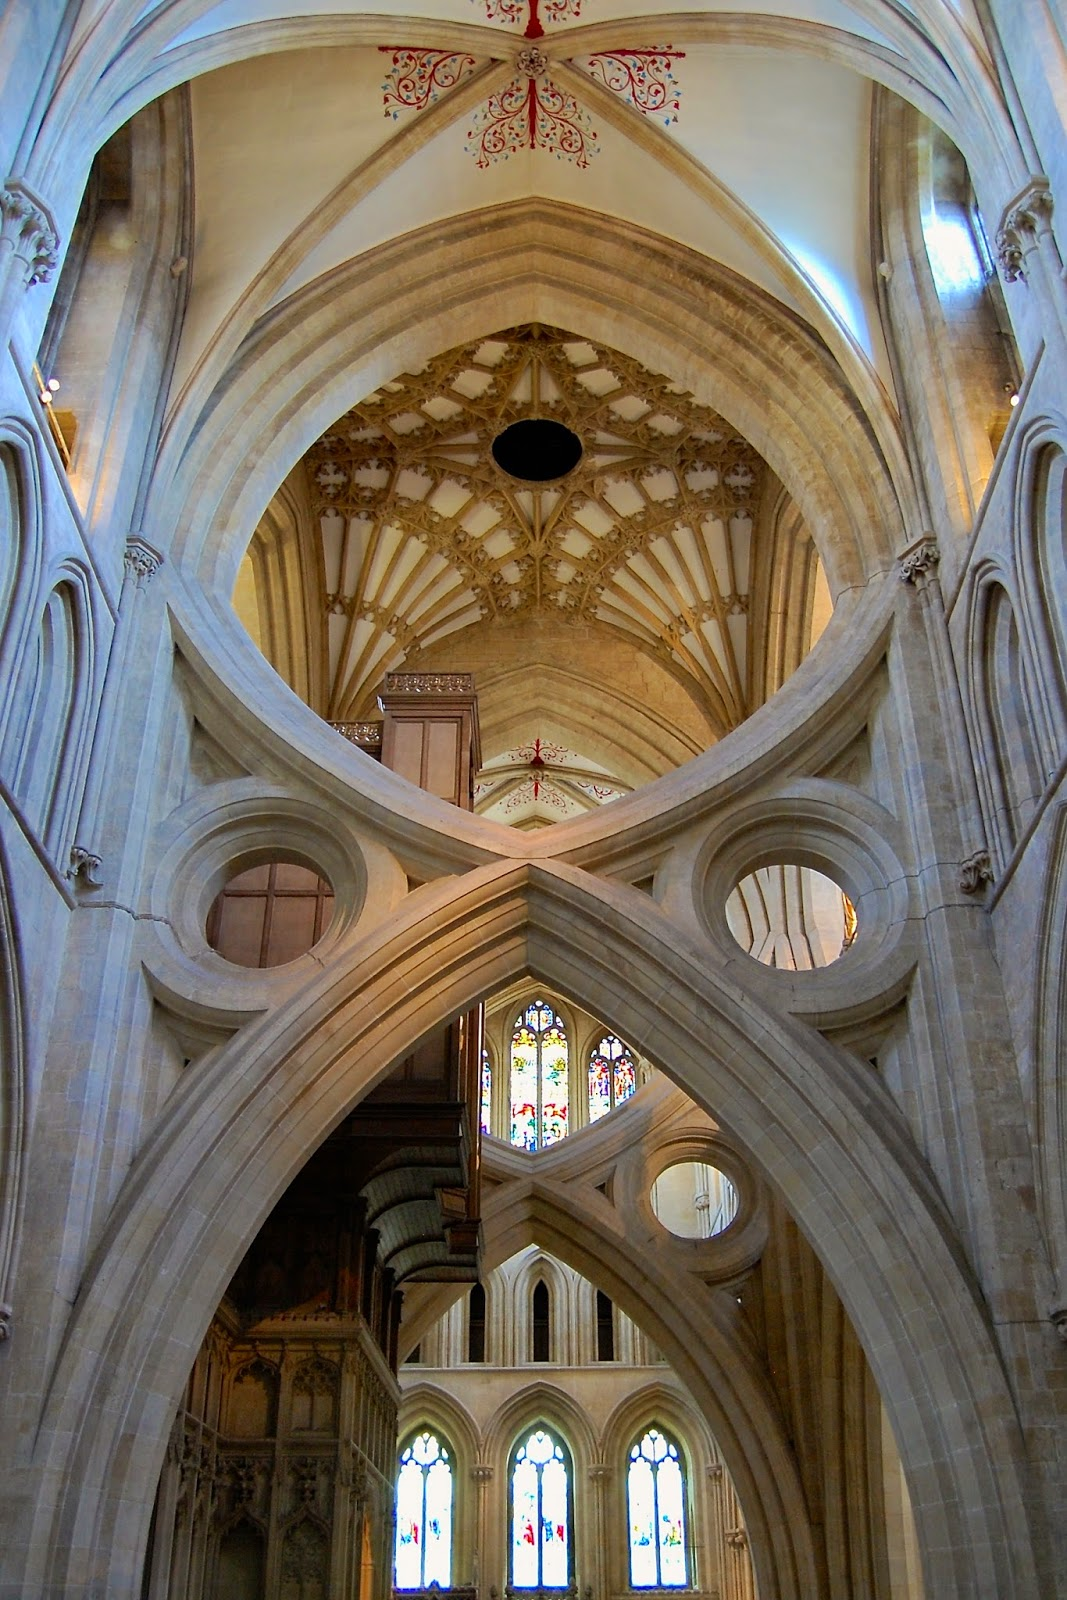 Scissor arches in Wells Cathedral